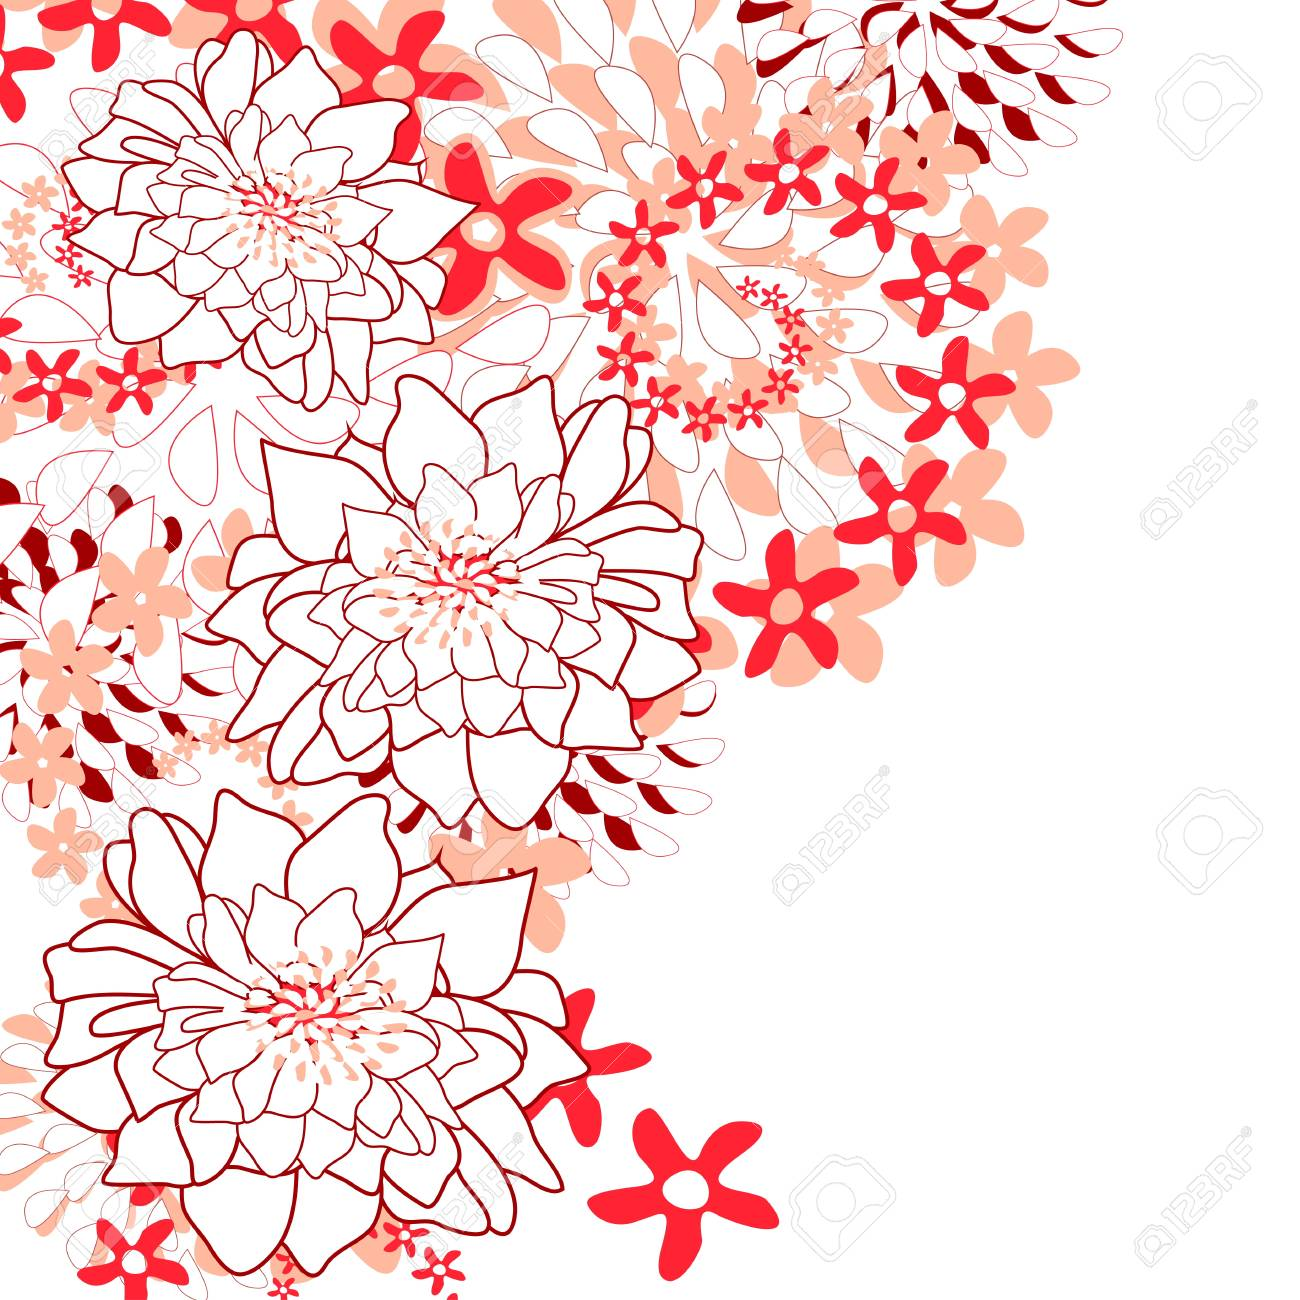 Flowers bright a background are more transparent Stock Vector - 13447077